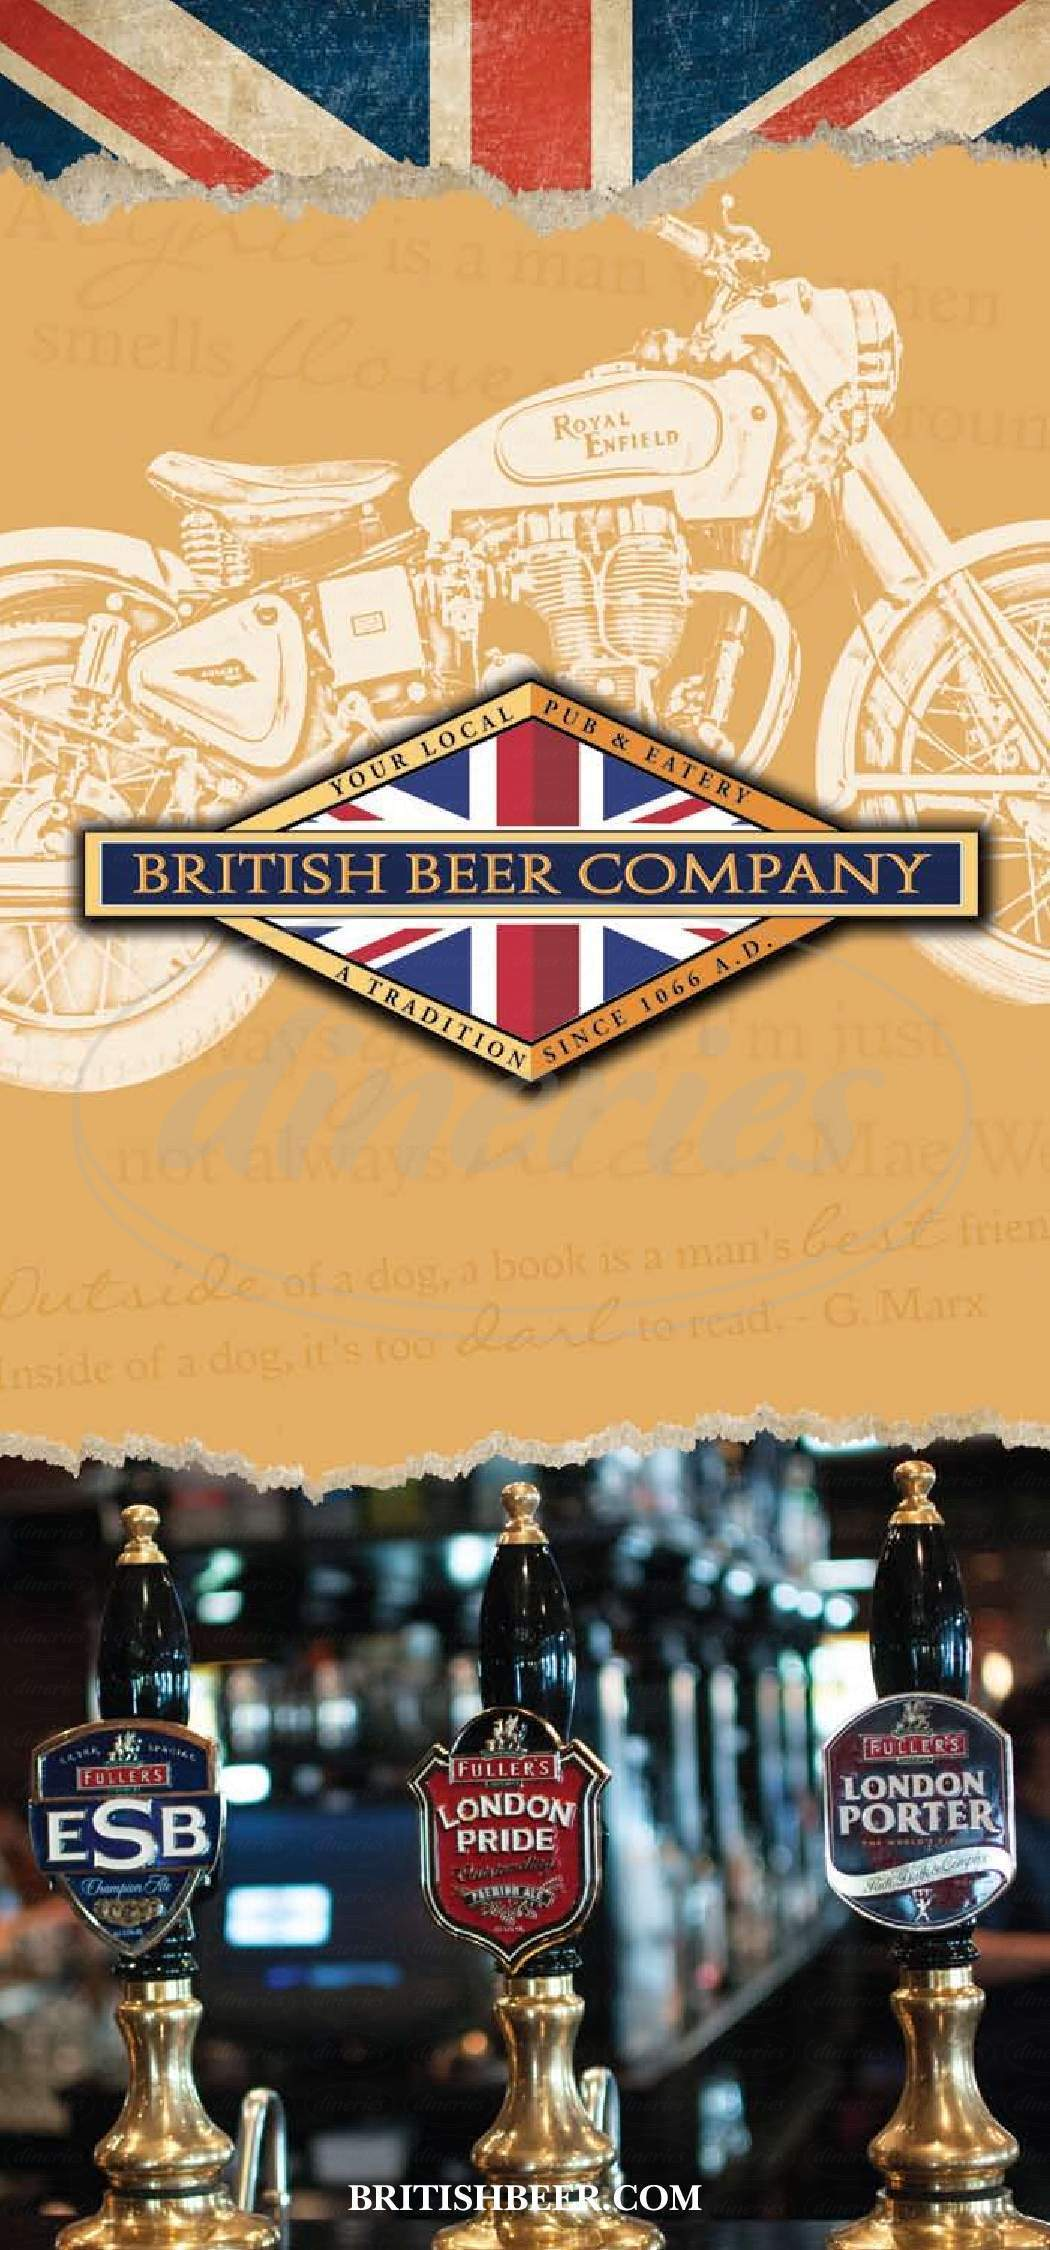 menu for Brittish Beer Company